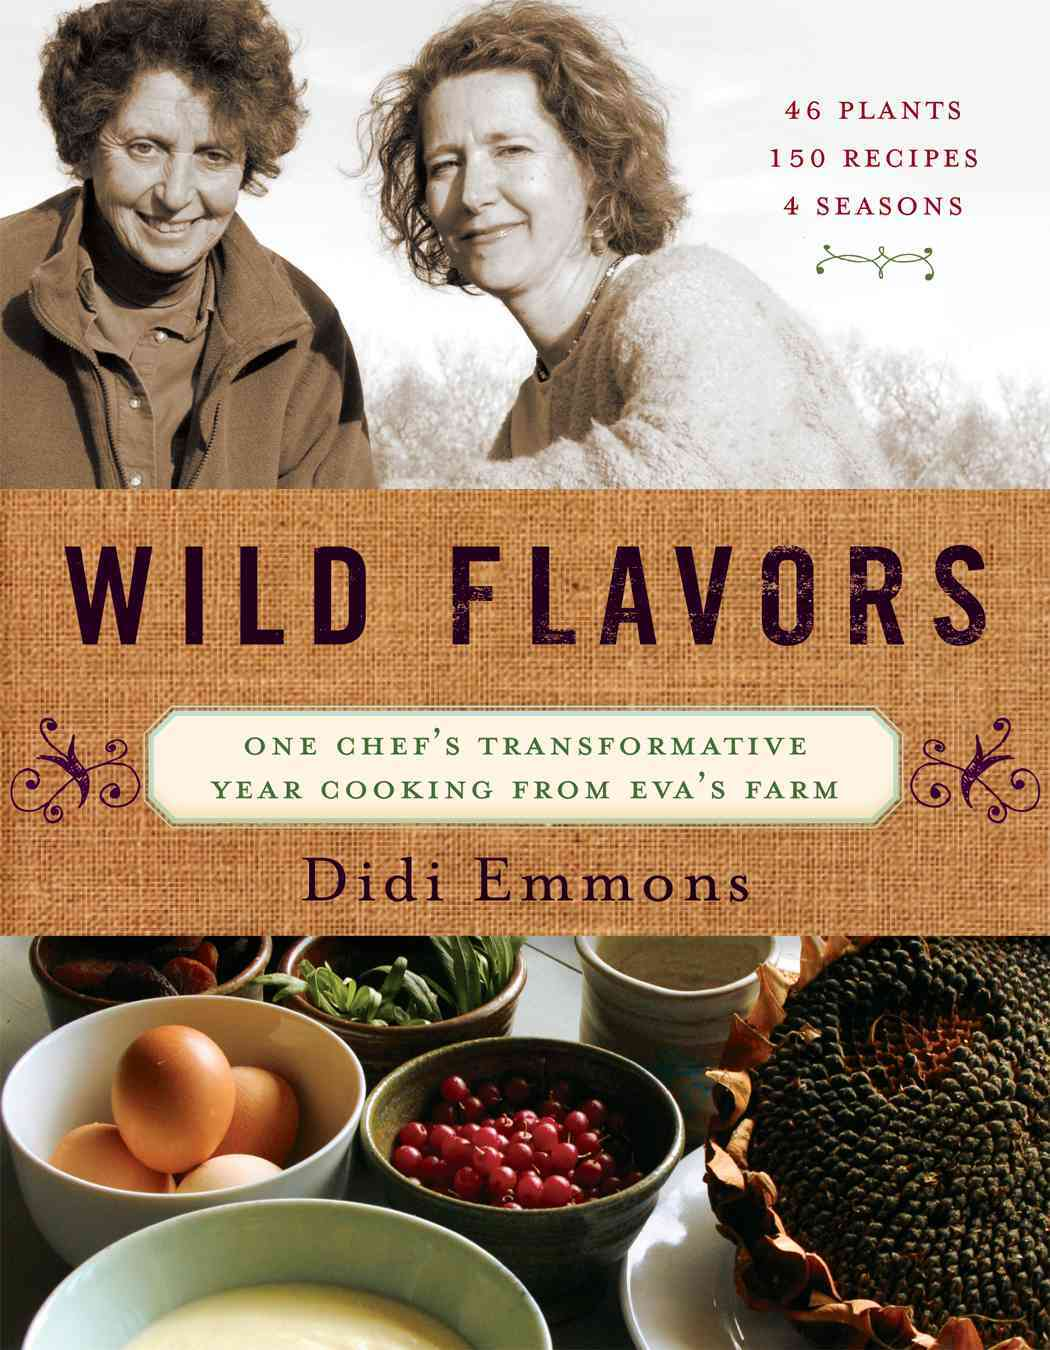 Wild Flavors: One Chef's Transformative Year Cooking from Eva's Farm (Hardcover)